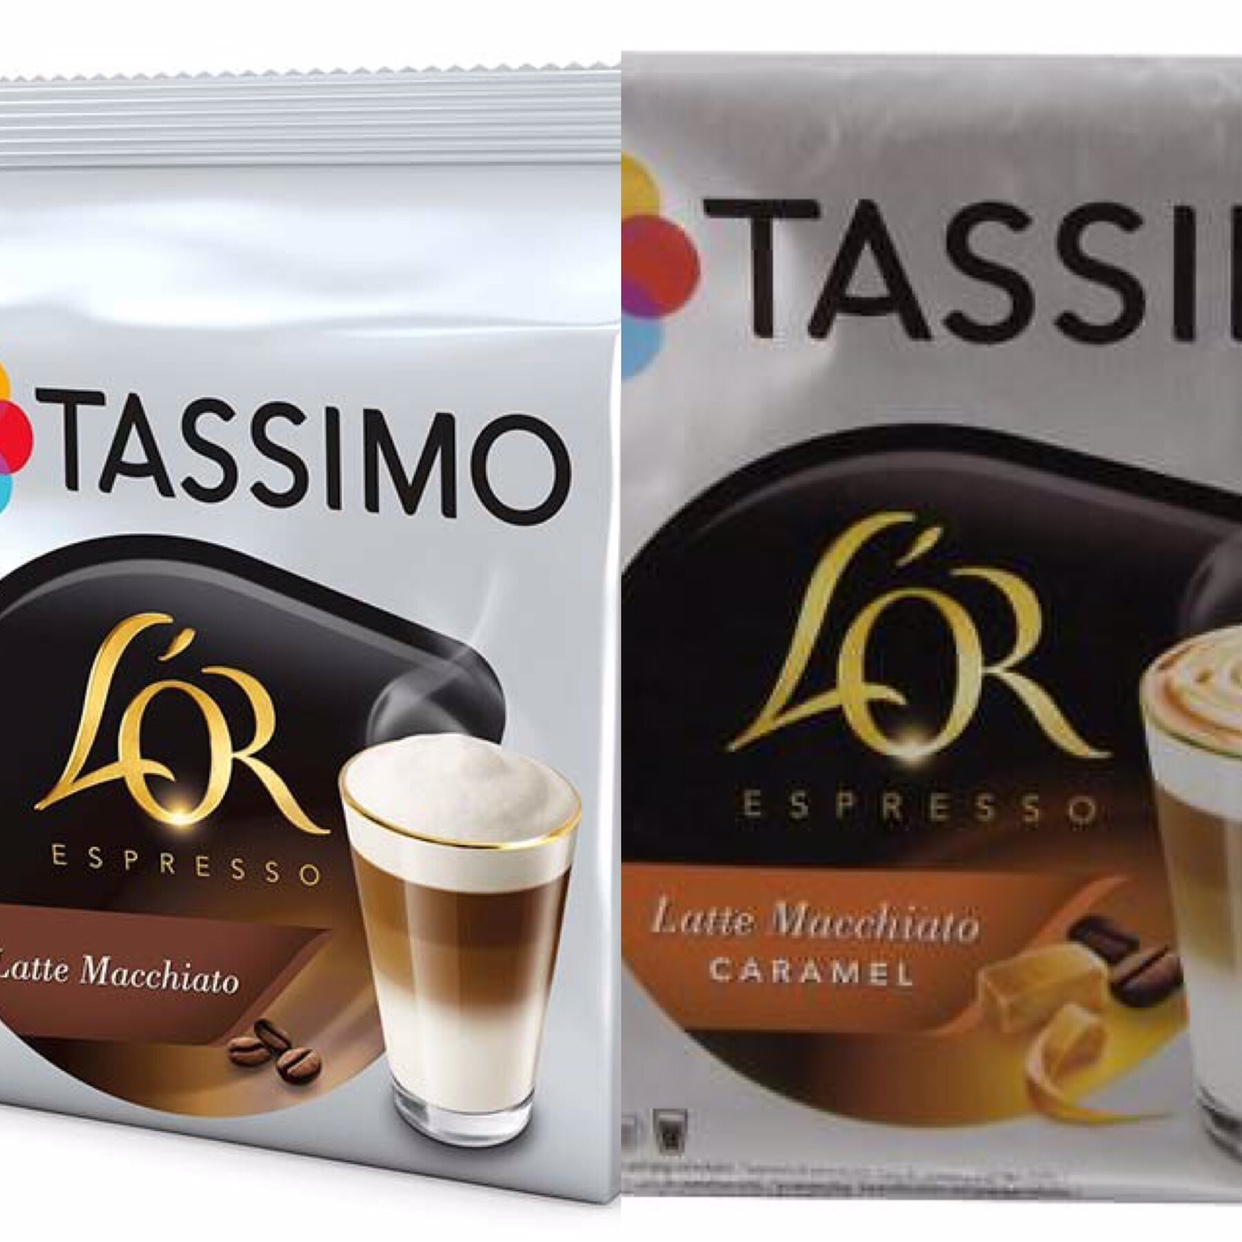 New Tassimo Lor Latte Macchiatos one is caramel and